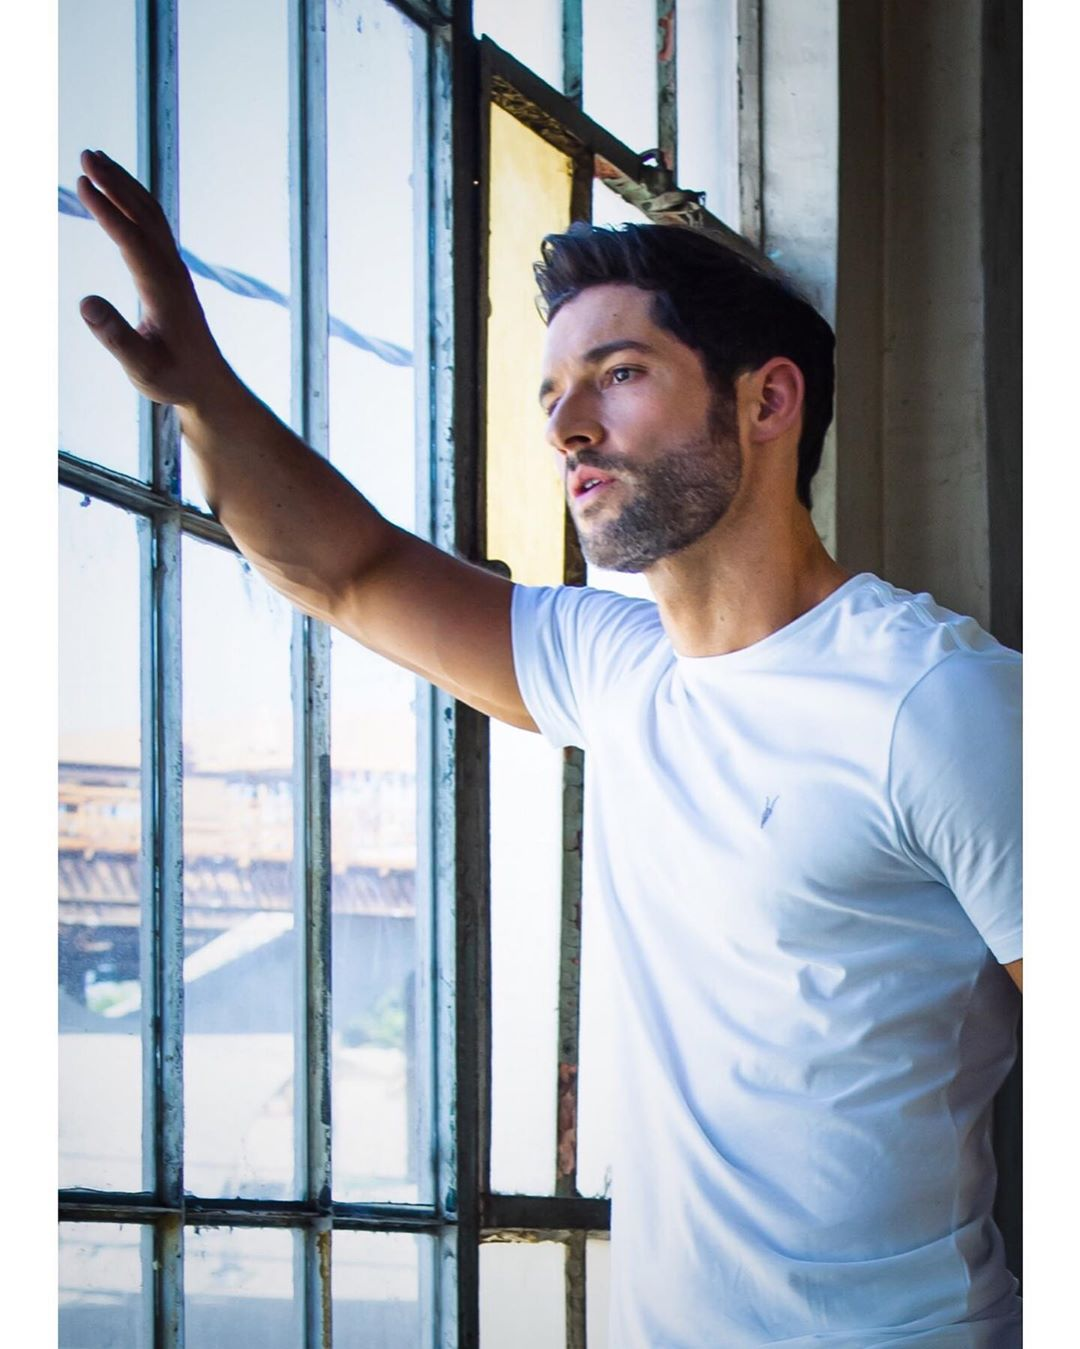 Lucifer Season 4 Bts: BTS Men's Health Photoshoot